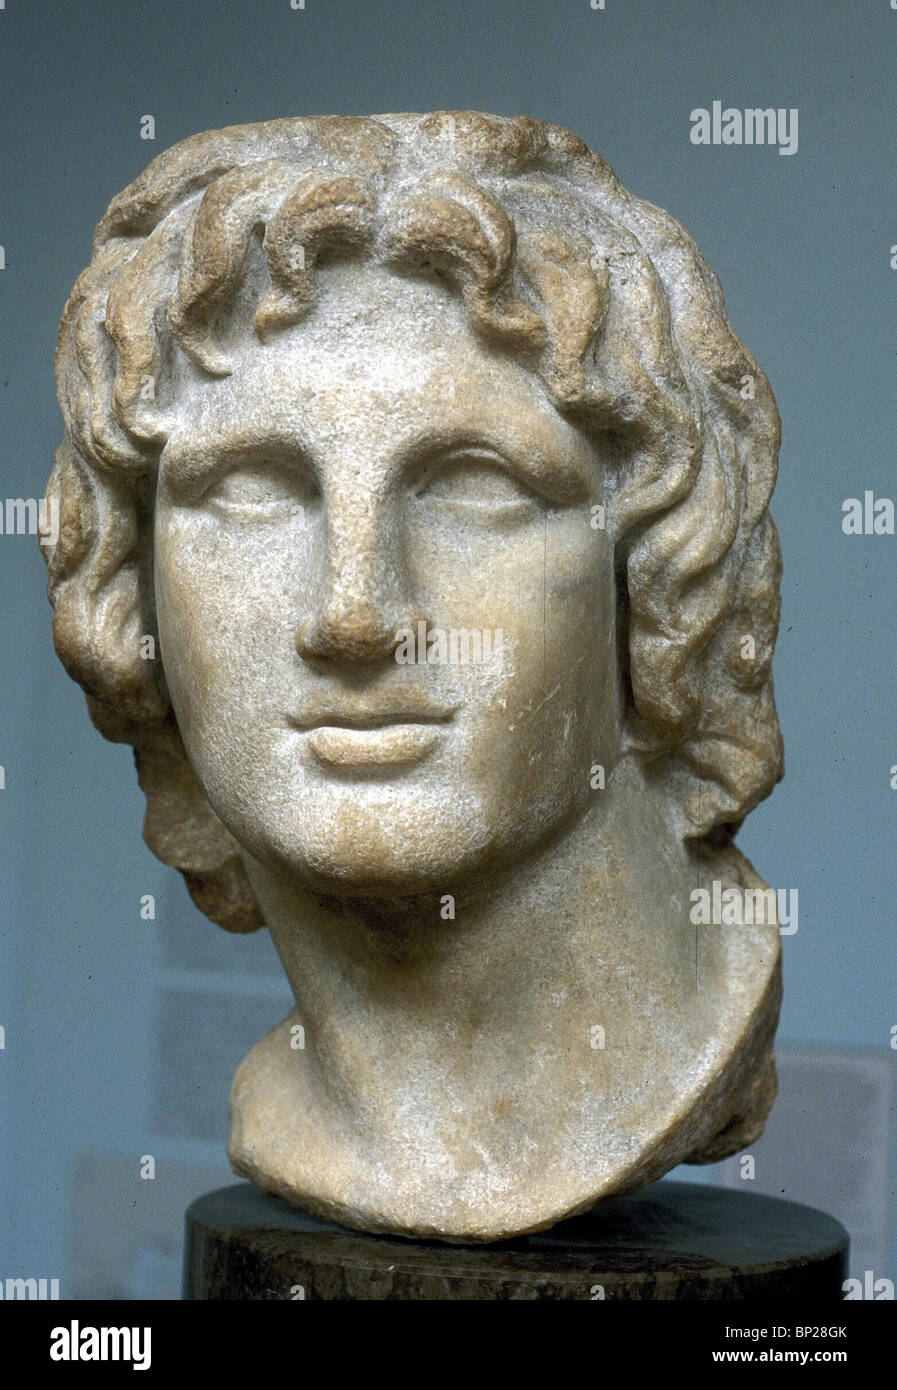 2175. MARBLE BUST OF ALEXANDER THE GREAT - Stock Image